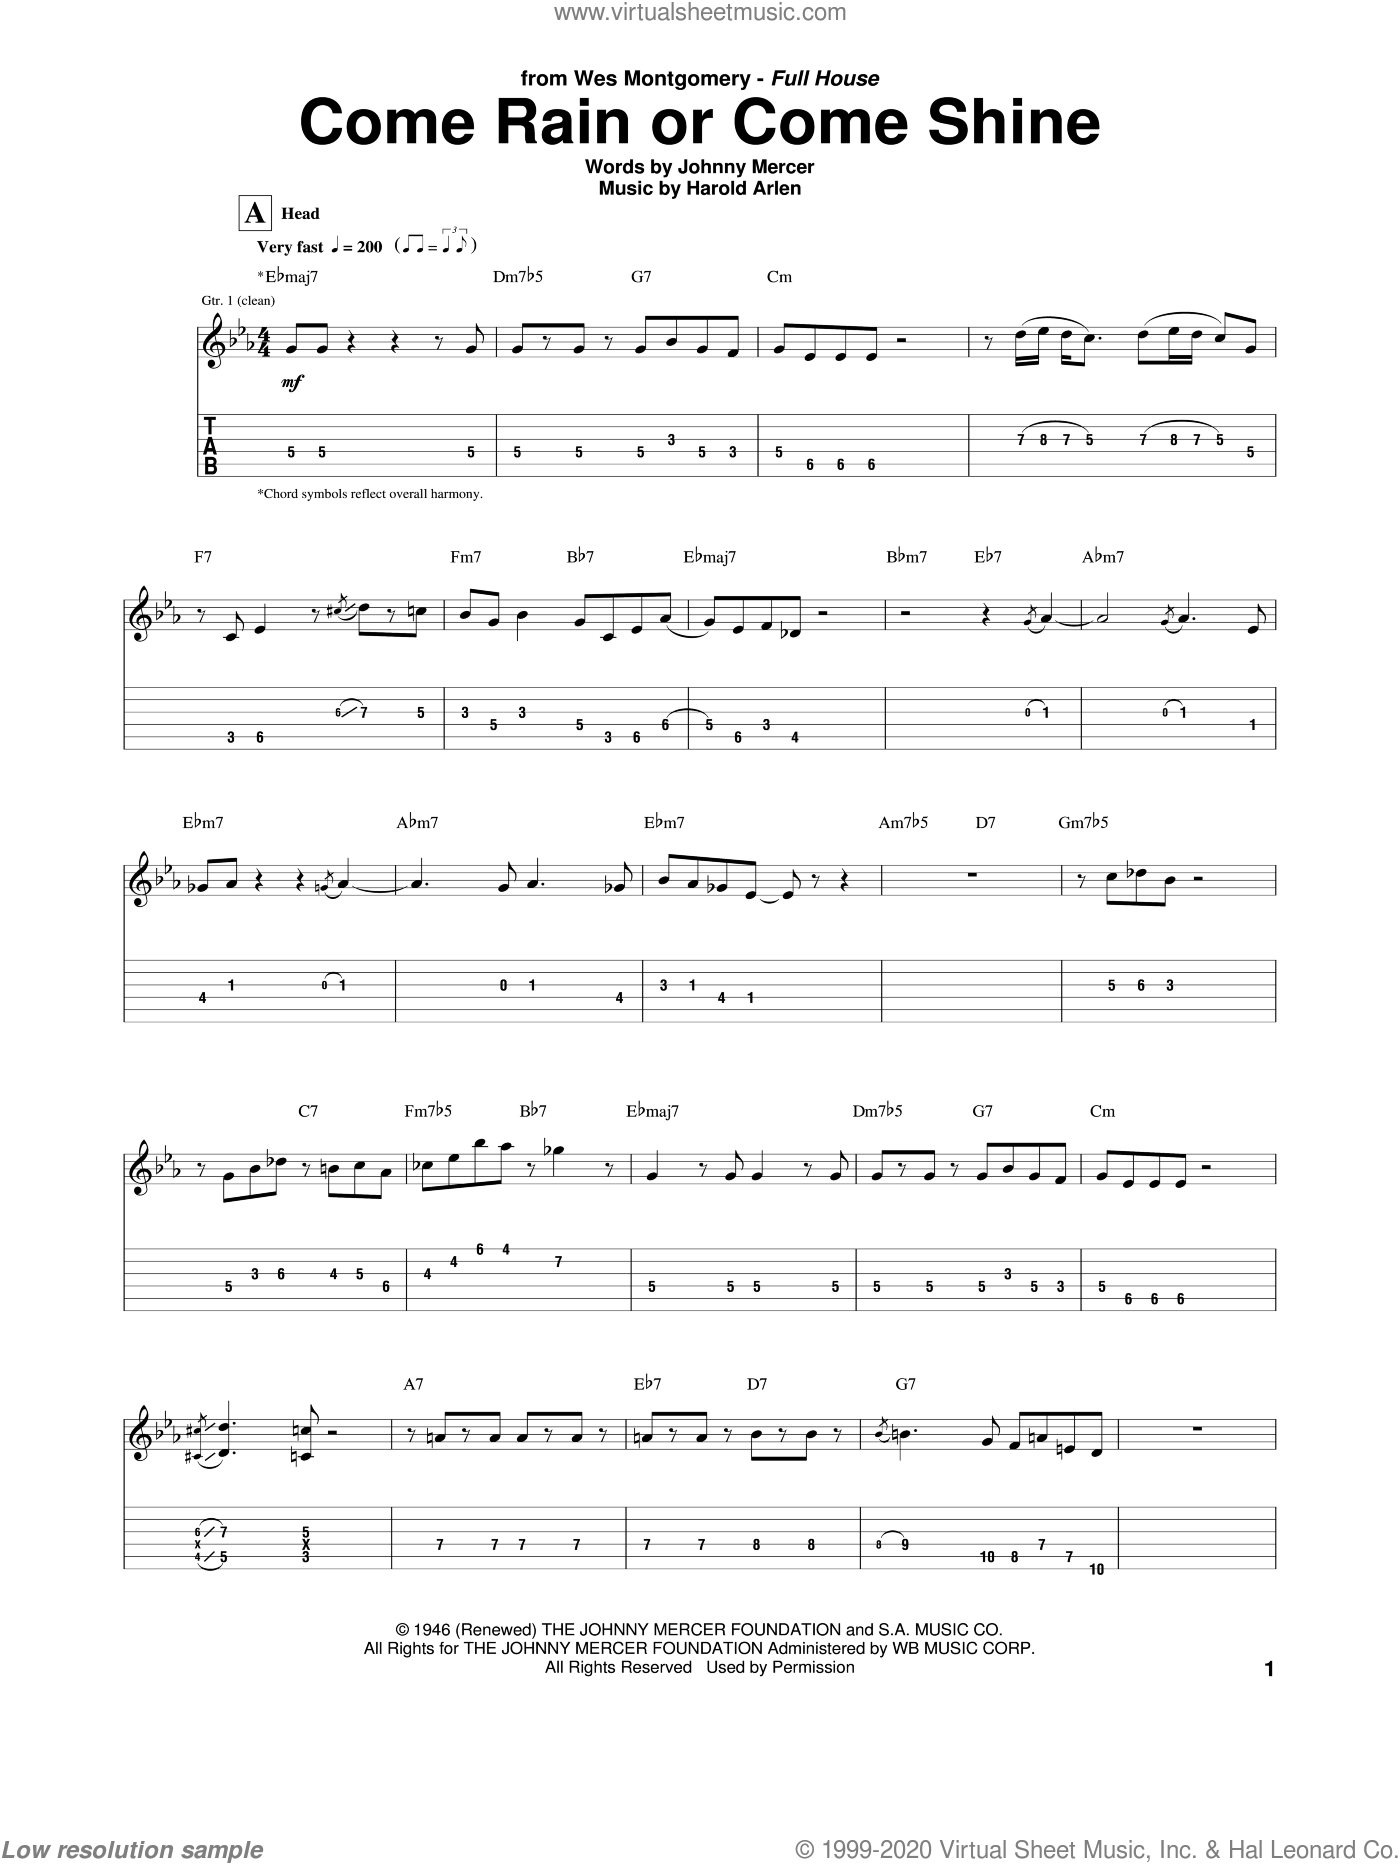 Come Rain Or Come Shine sheet music for guitar (tablature) by Wes Montgomery